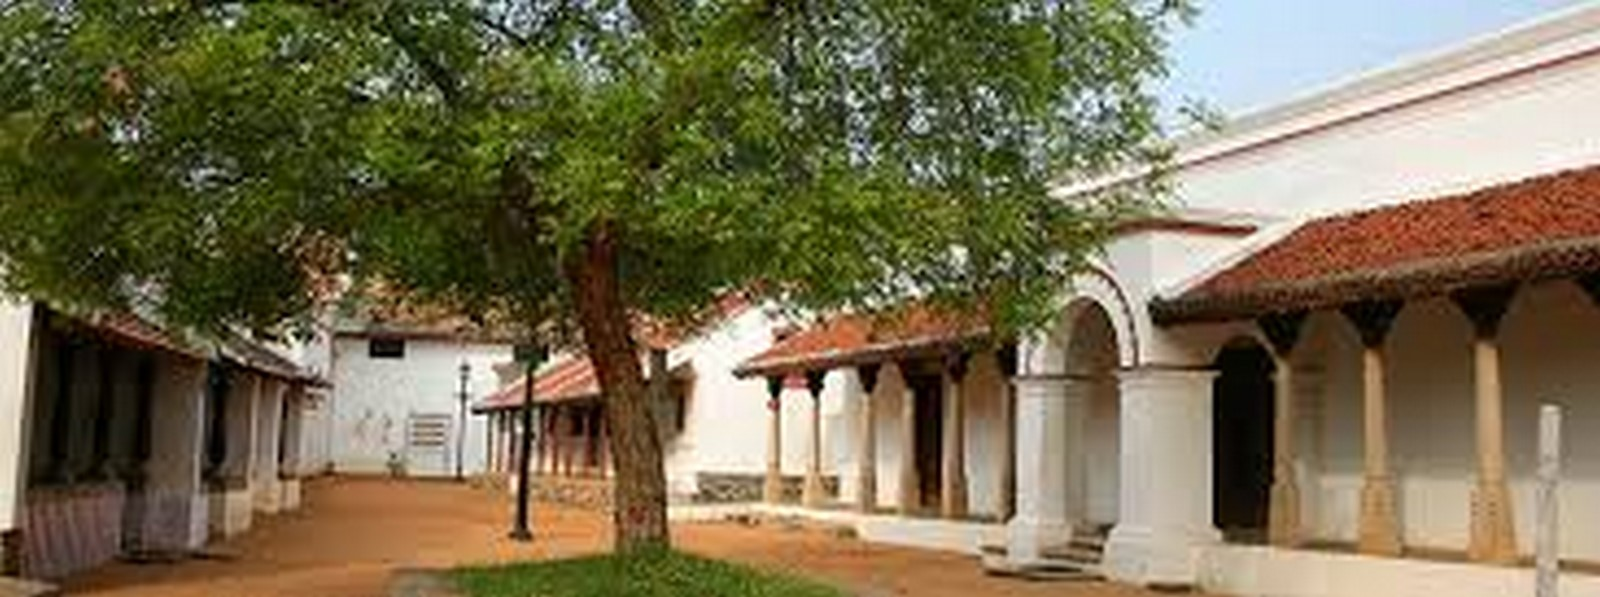 10 Examples of Vernacular architecture in South India - Sheet2